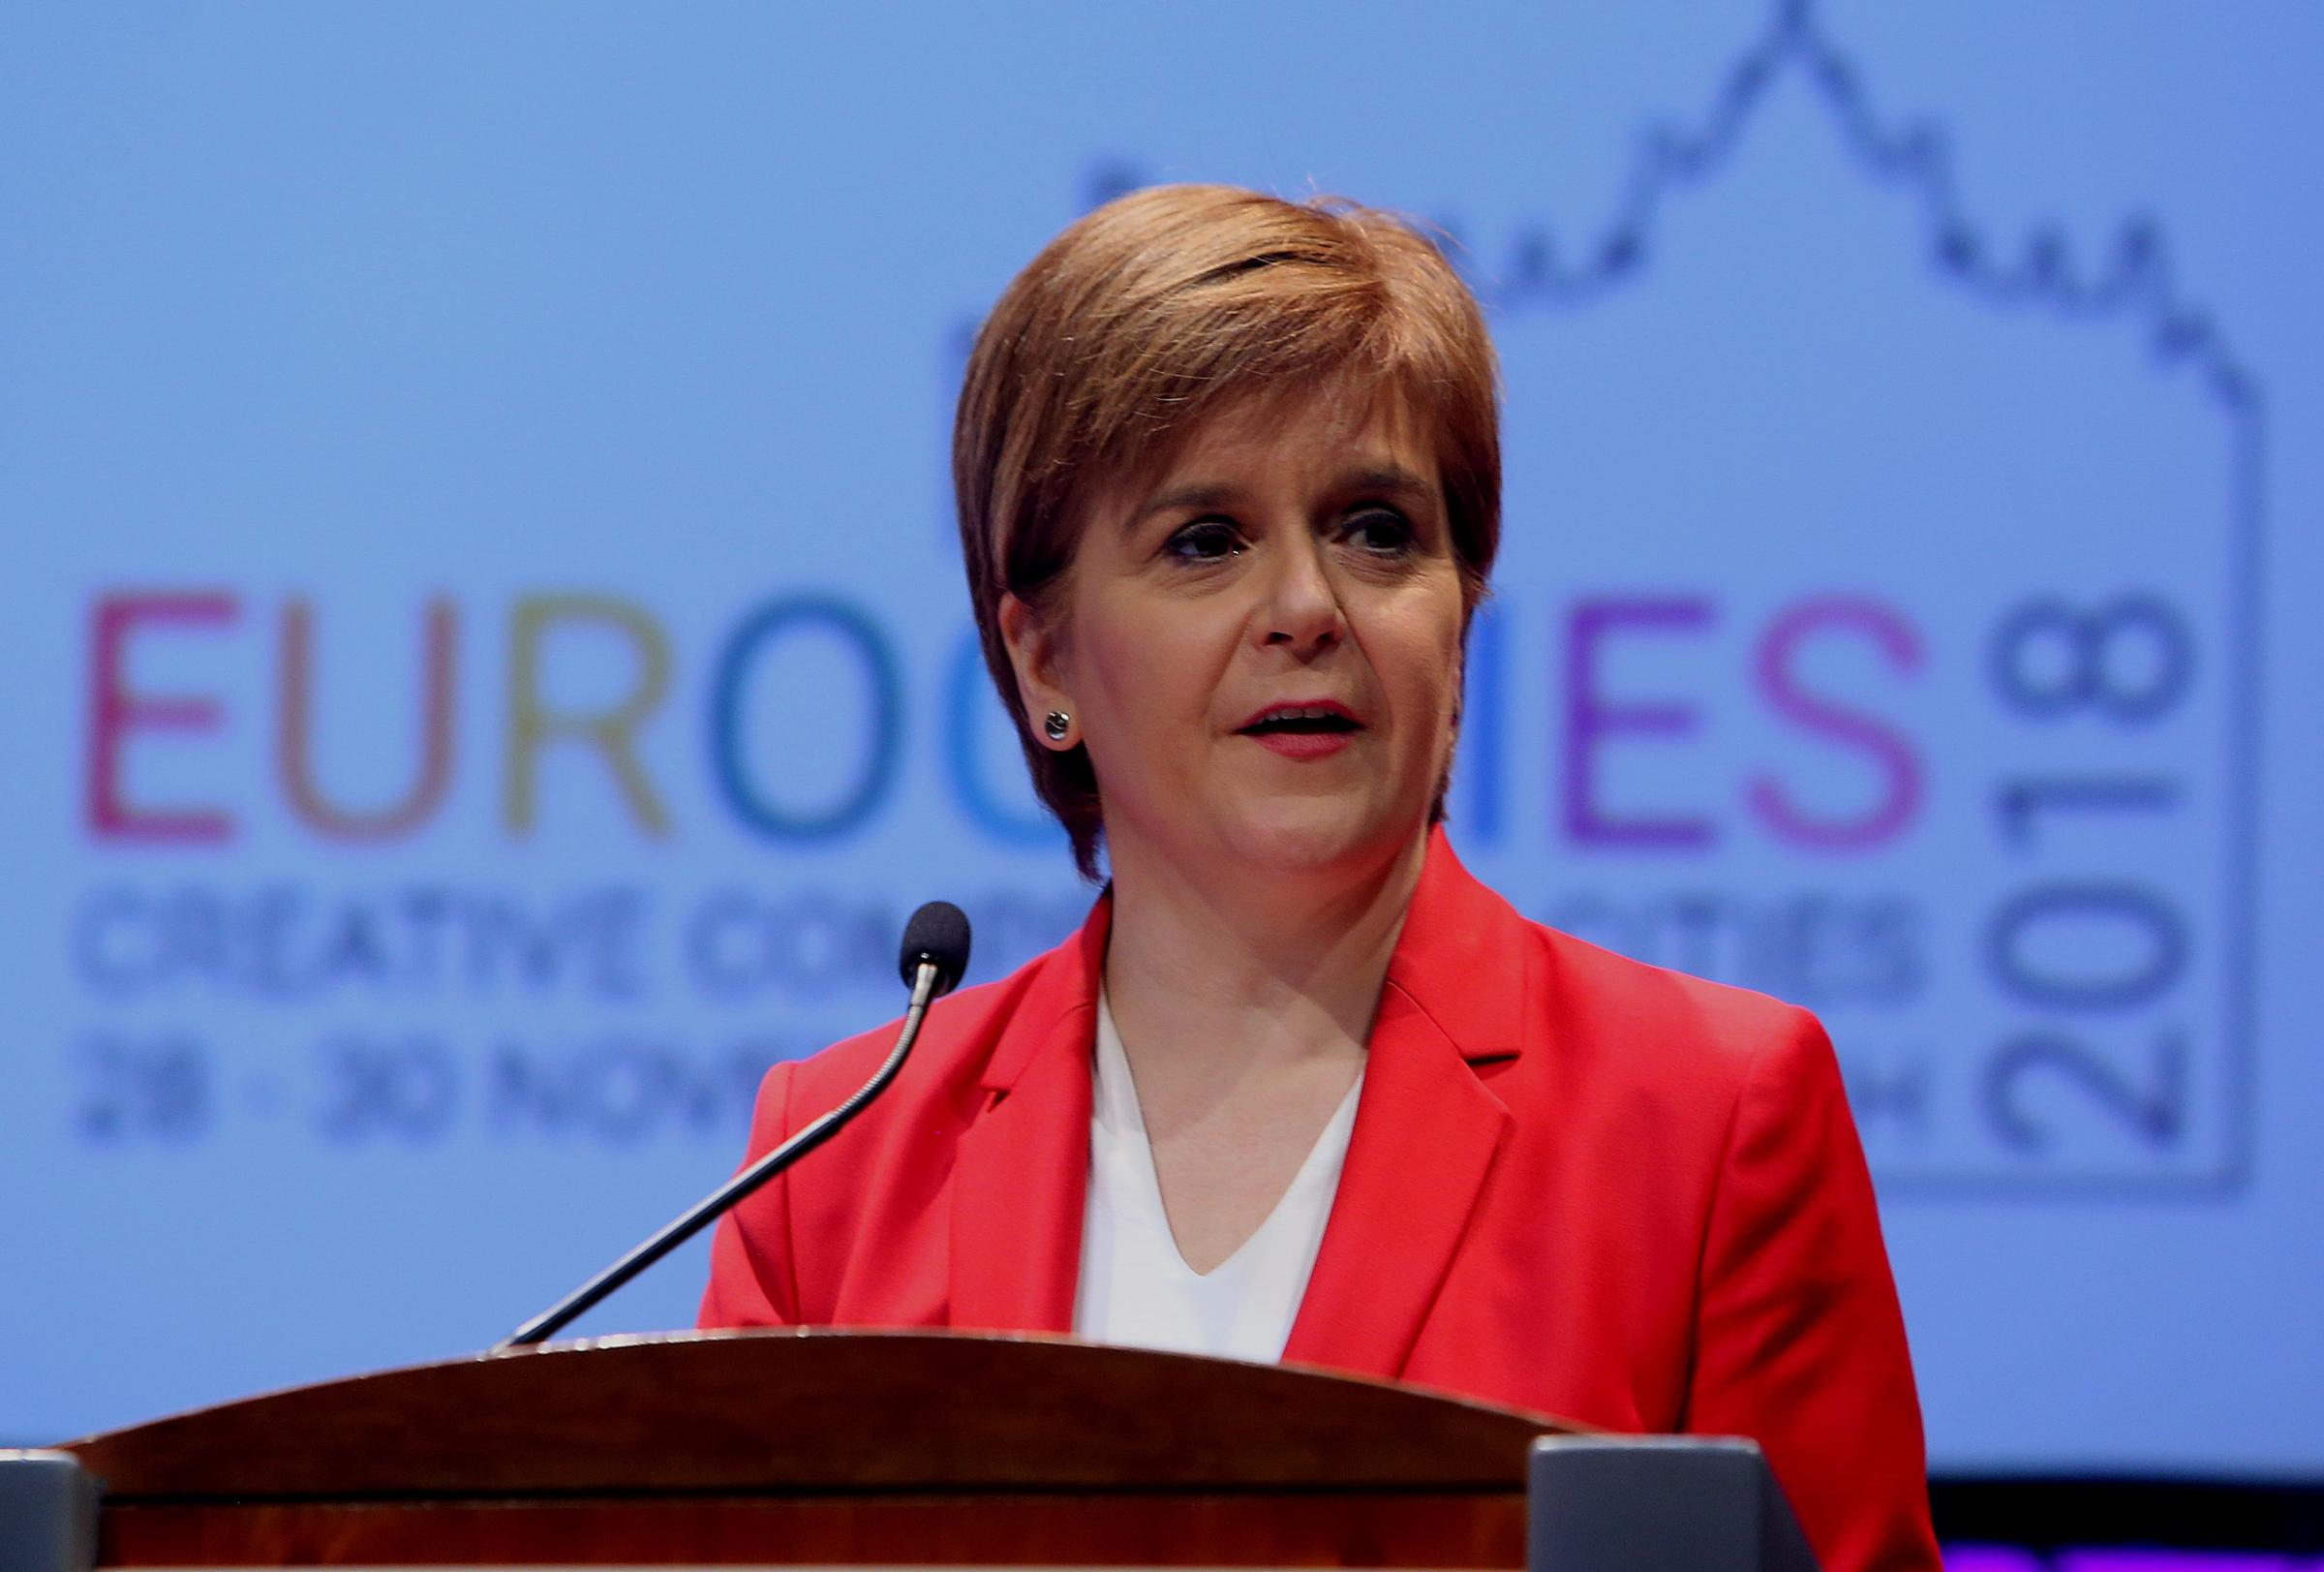 First Minister Nicola Sturgeon has been pushing for Scotland to get its own arrangement